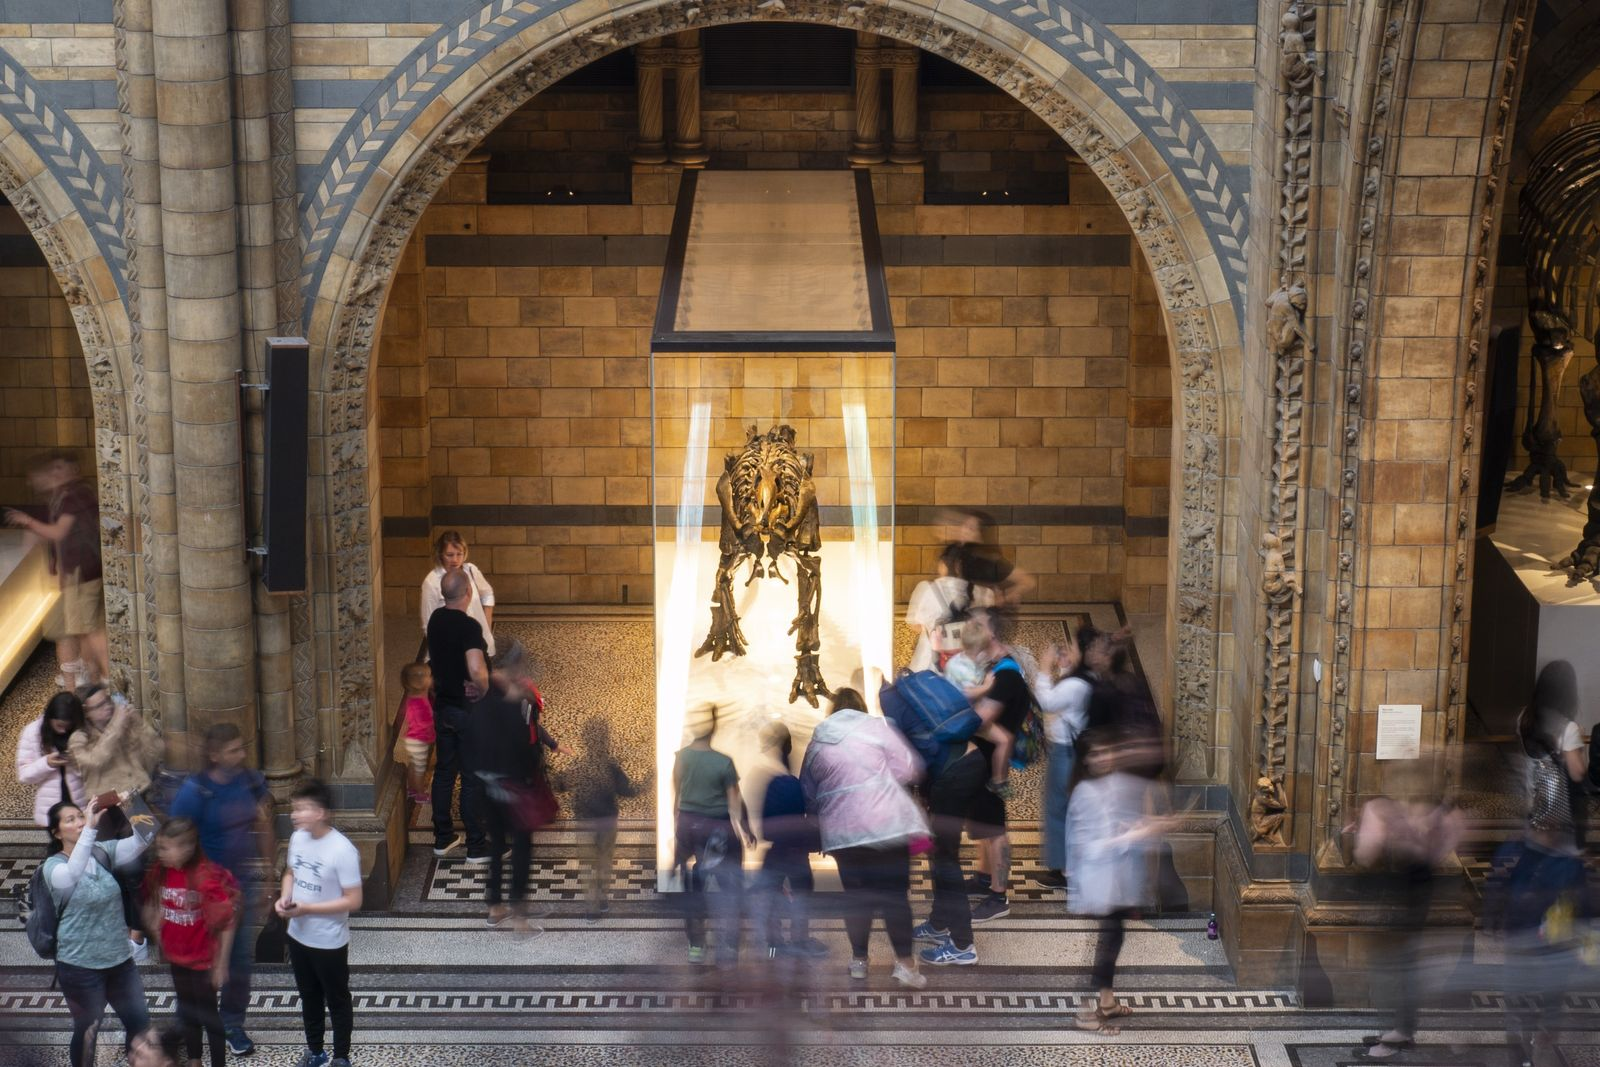 Crowds swirl around the Mantellisaurus skeleton in Hintze Hall, the grand gallery of London's Natural History ...